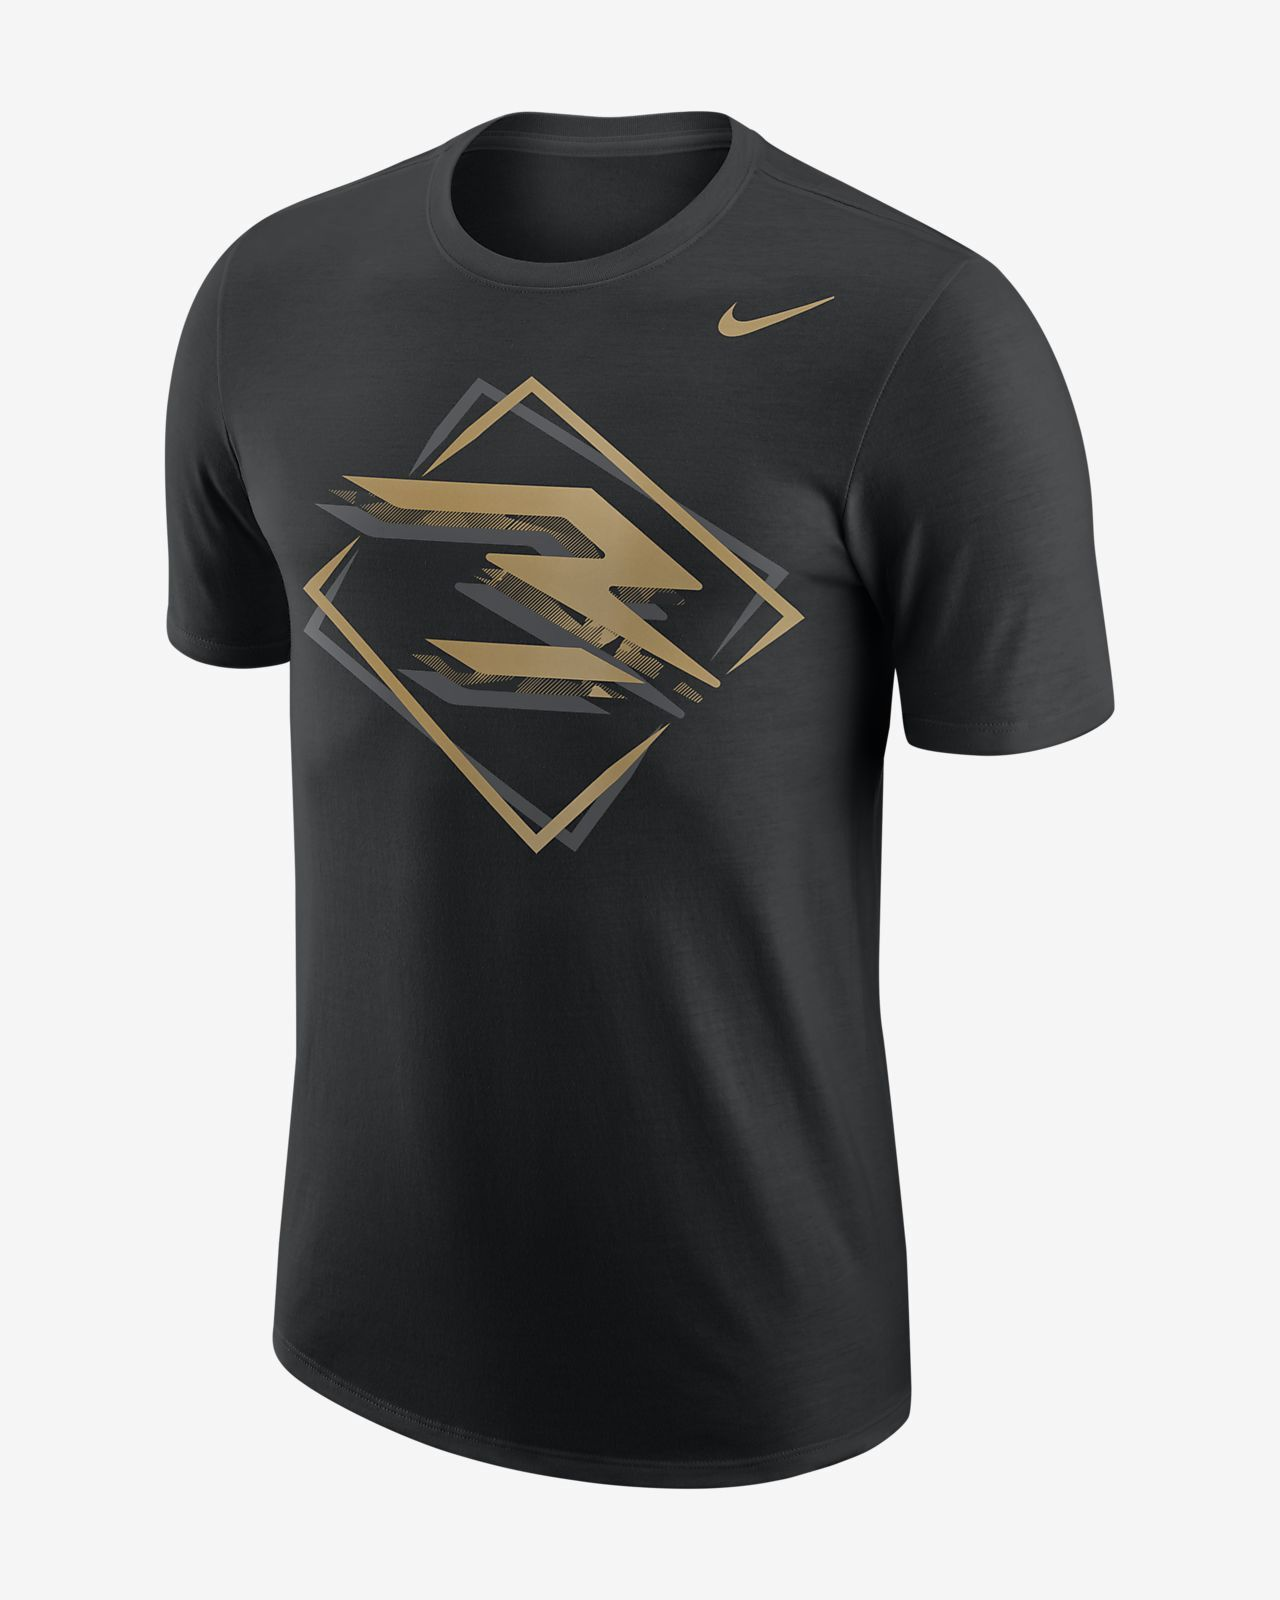 e575bee2b520 Nike BSBL Speed Men's T-Shirt | Tees | Mens tops, Nike, T shirt